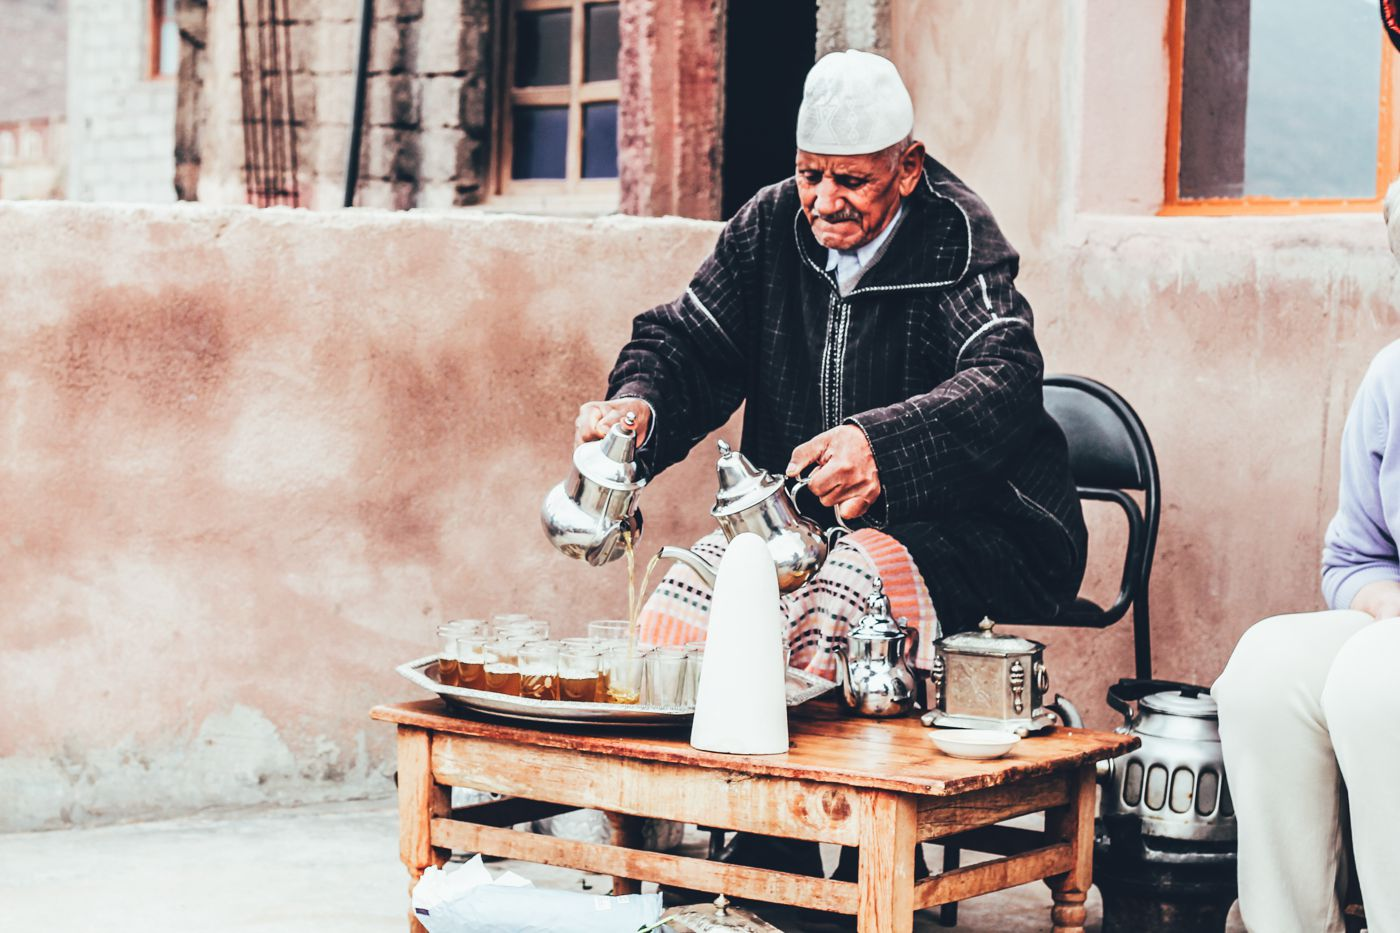 An Afternoon In A Berber Village in Morocco (19)